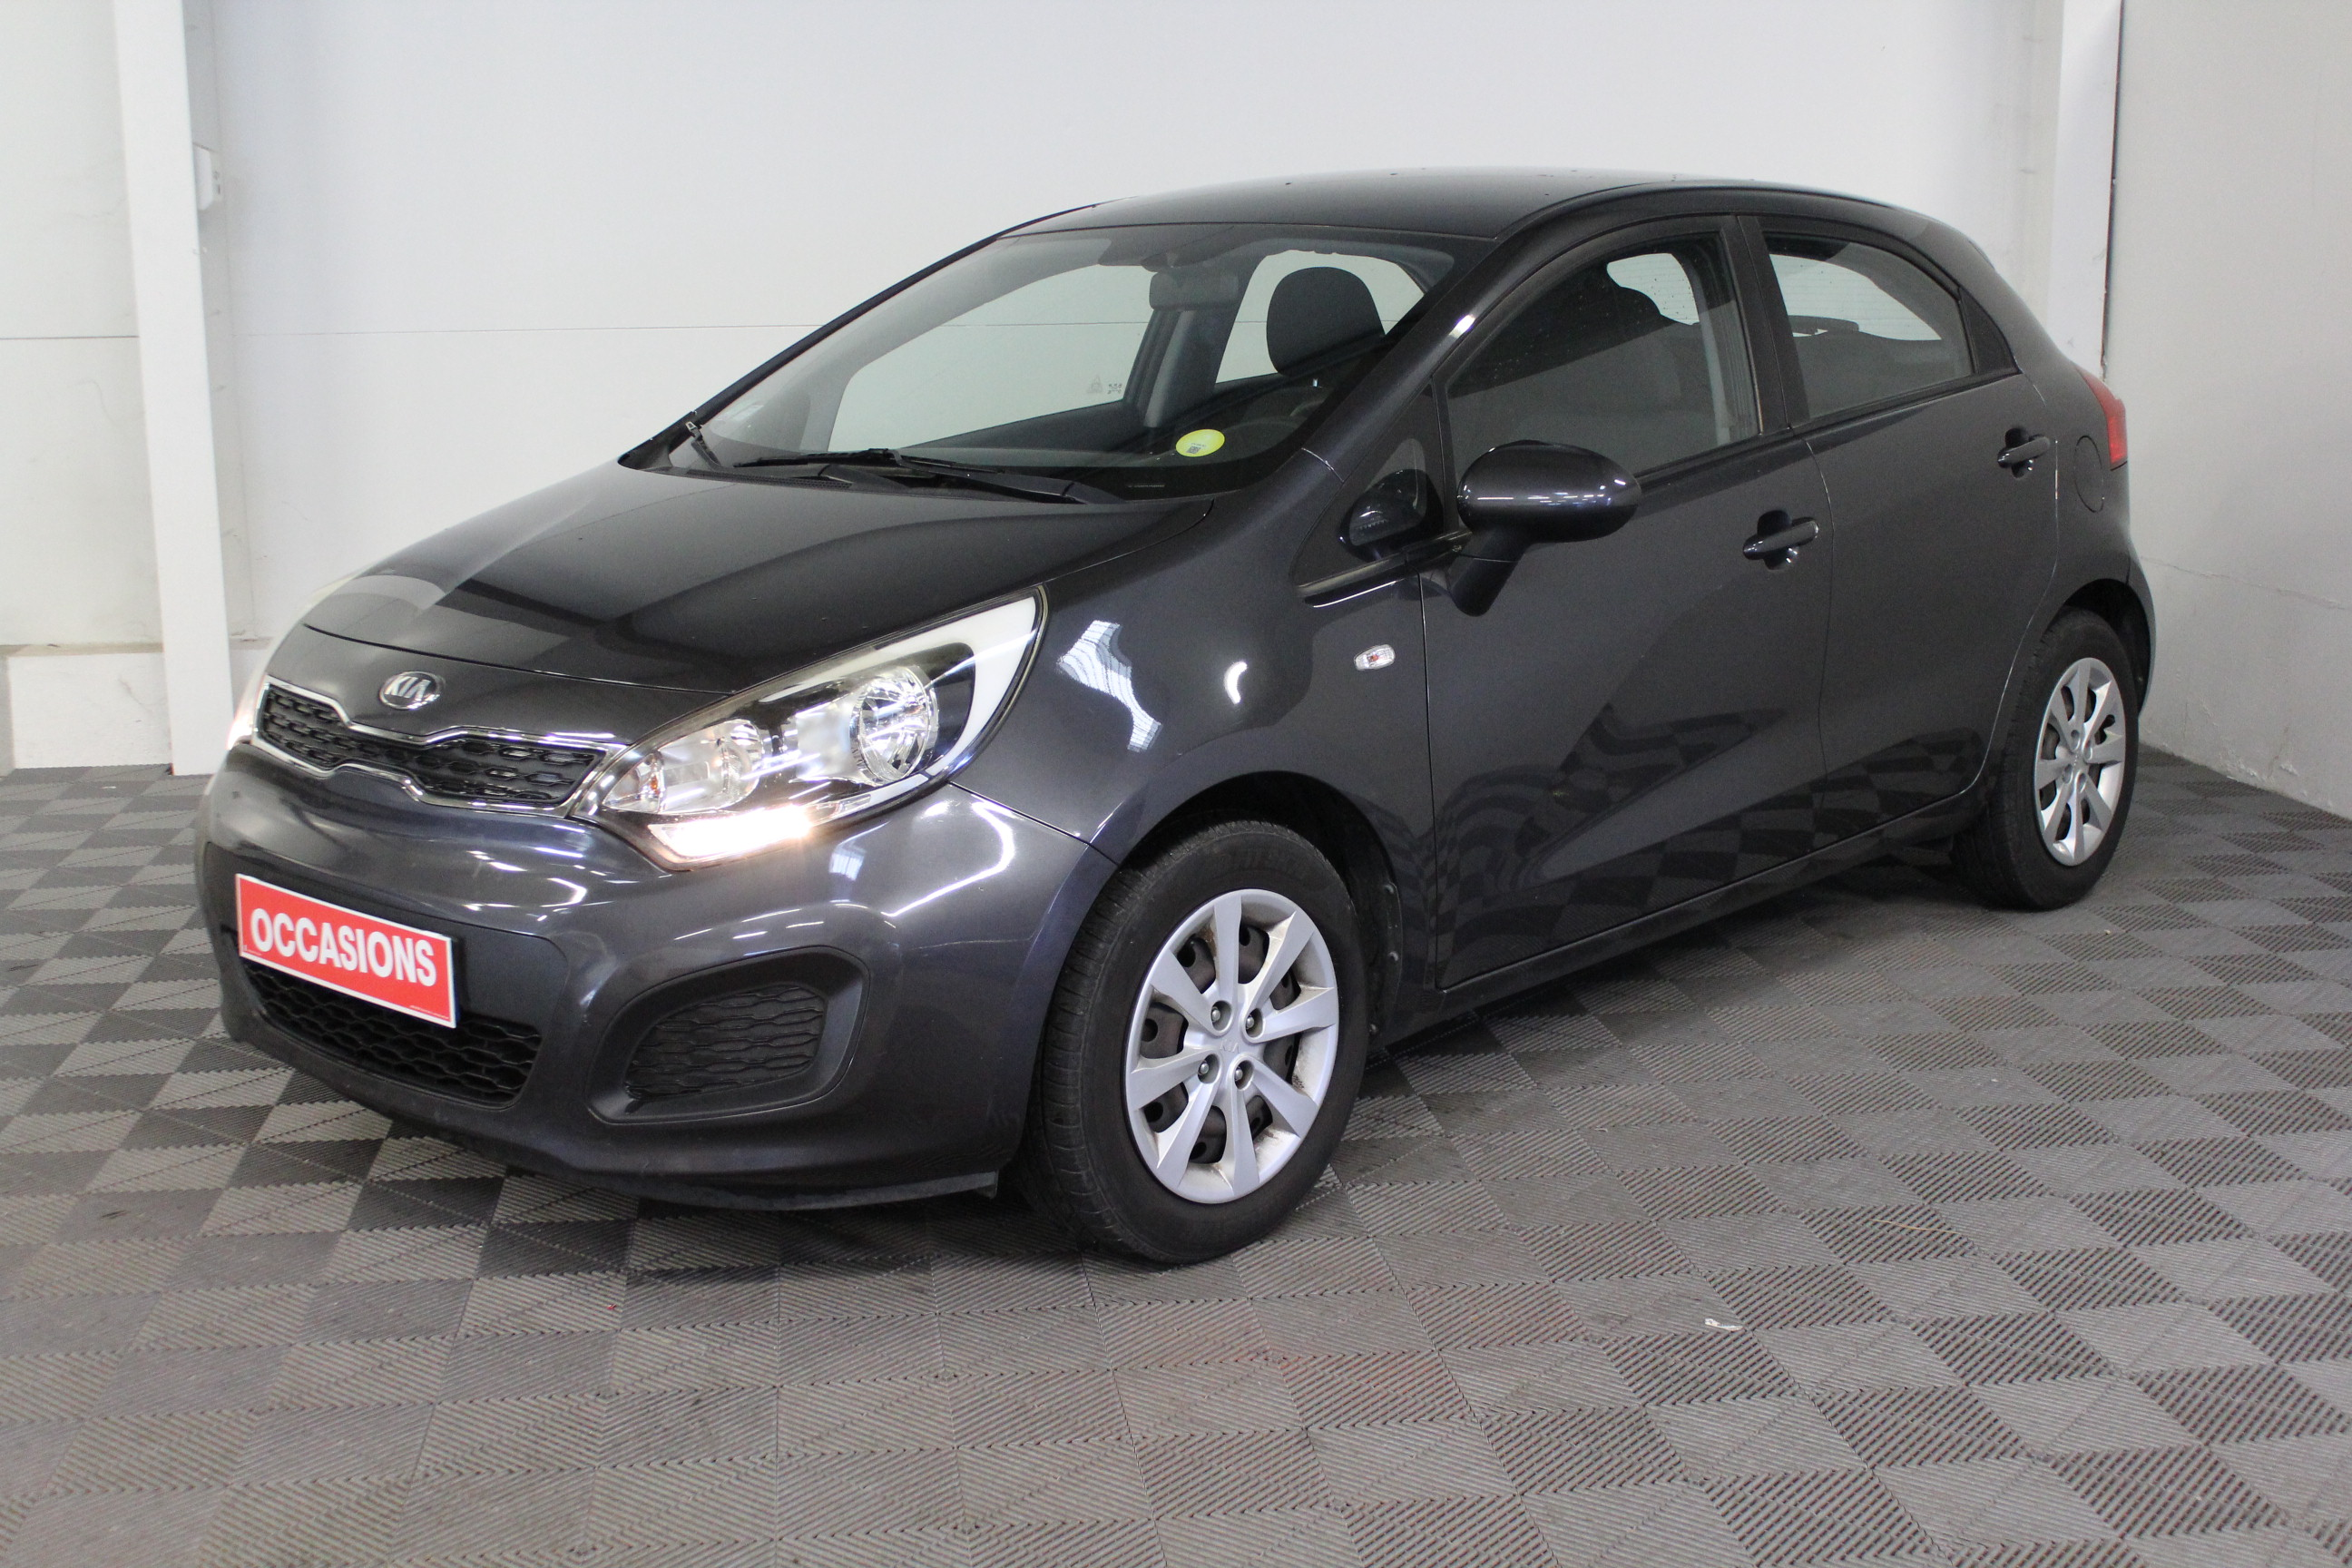 KIA RIO 2013 à 6900 € - Photo n°1